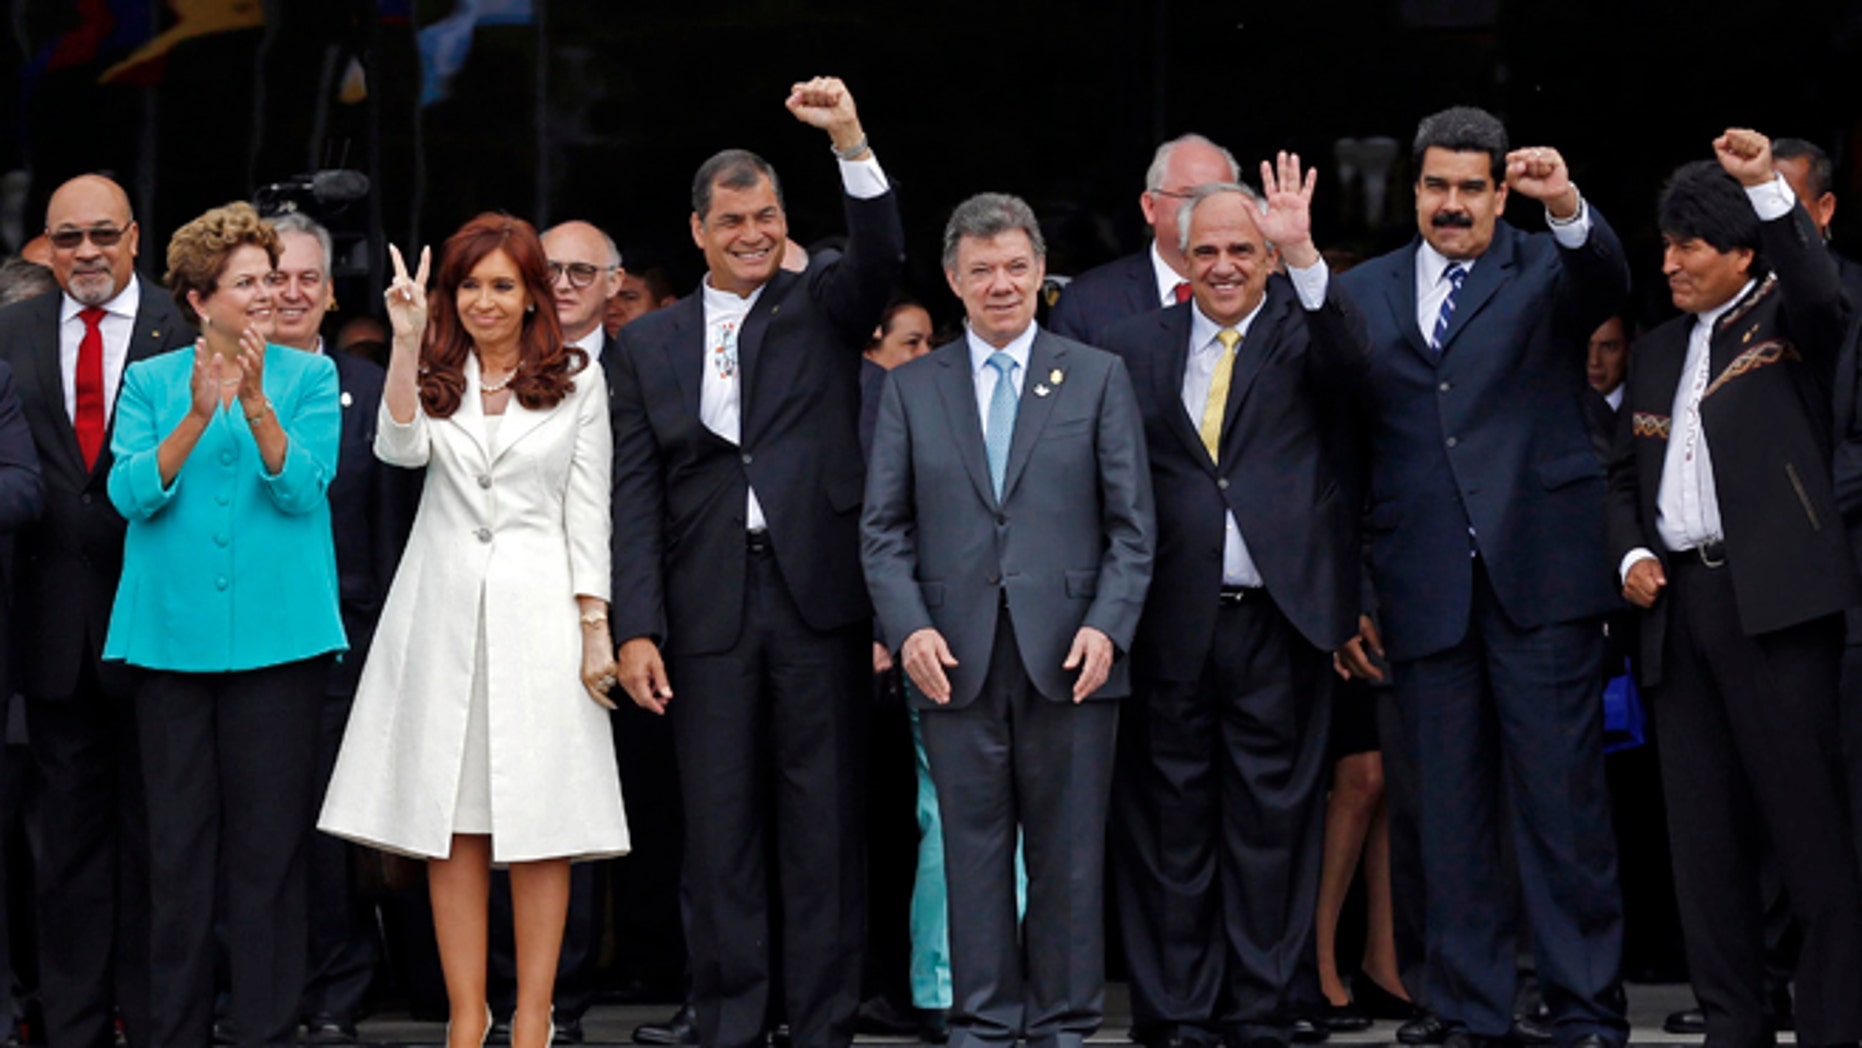 FILE - In this Dec. 5, 2014 file photo, UNASUR leaders pose for a group photo at the inauguration of the new UNASUR headquarters building in Quito, Ecuador. From left to right are Suriname's President Desi Bouterse, Brazil's President Dilma Rousseff, Argentina's President Cristina Fernandez, Ecuador's President Rafael Correa, Colombia's President Juan Manuel Santos, UNASUR General Secretary and former Colombian President  Ernesto Samper, Venezuela's President Nicolas Maduro, and Bolivia's President Evo Morales. The South American regional bloc did attempt to mediate between the Venezuelan government and the opposition last year. But that effort fell through, and observers see those leaders as loath to try again. (AP Photo/Dolores Ochoa, File)